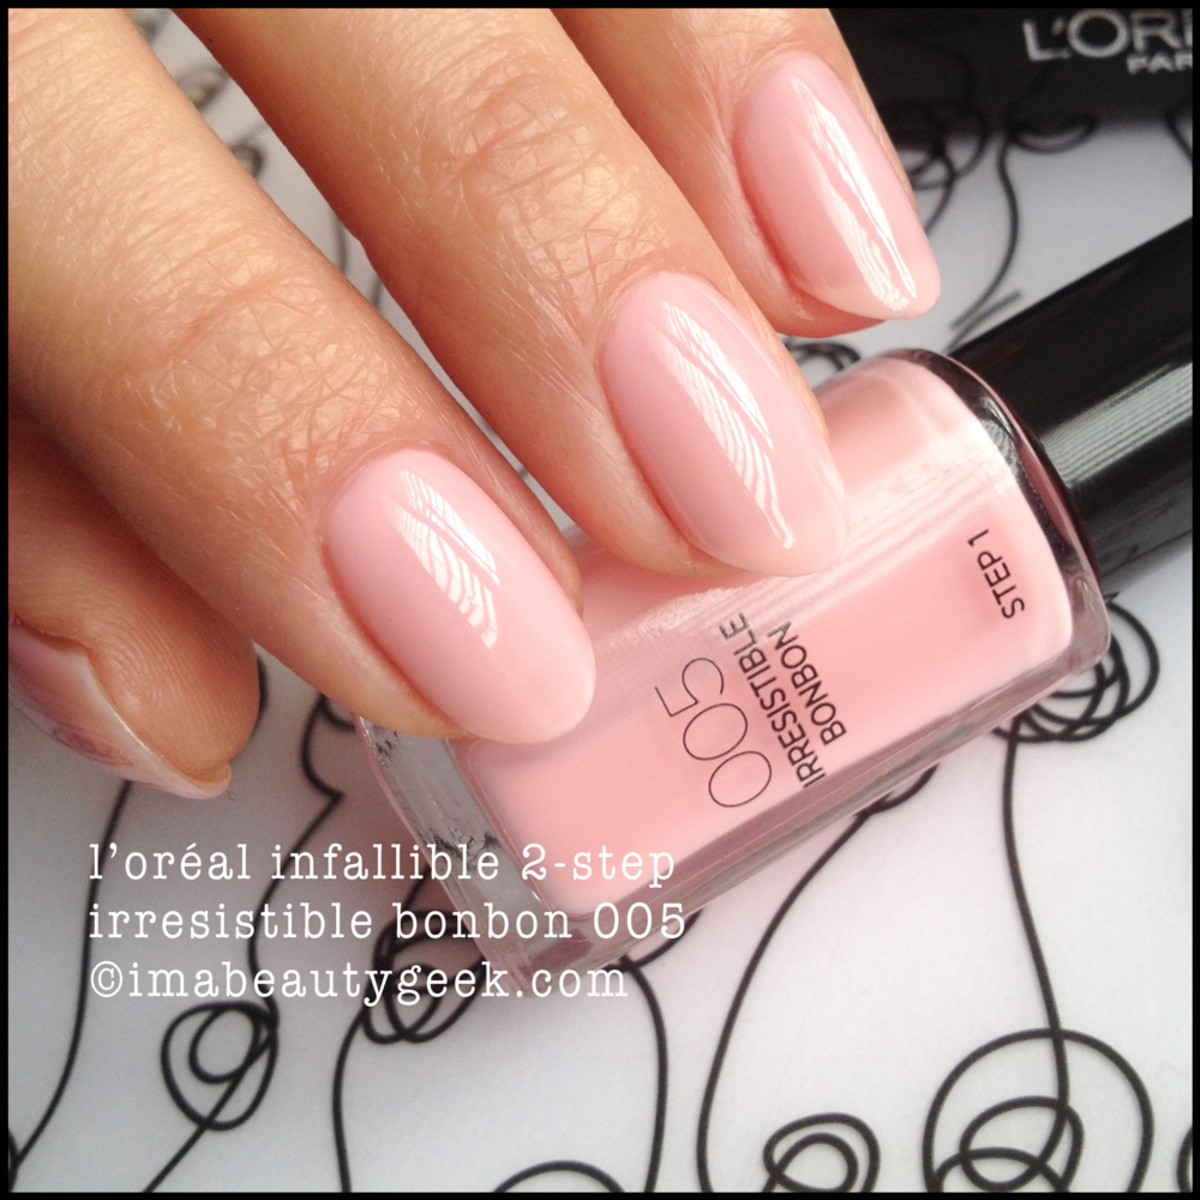 LOreal Infallible 2 Step Irresistible Bonbon 005